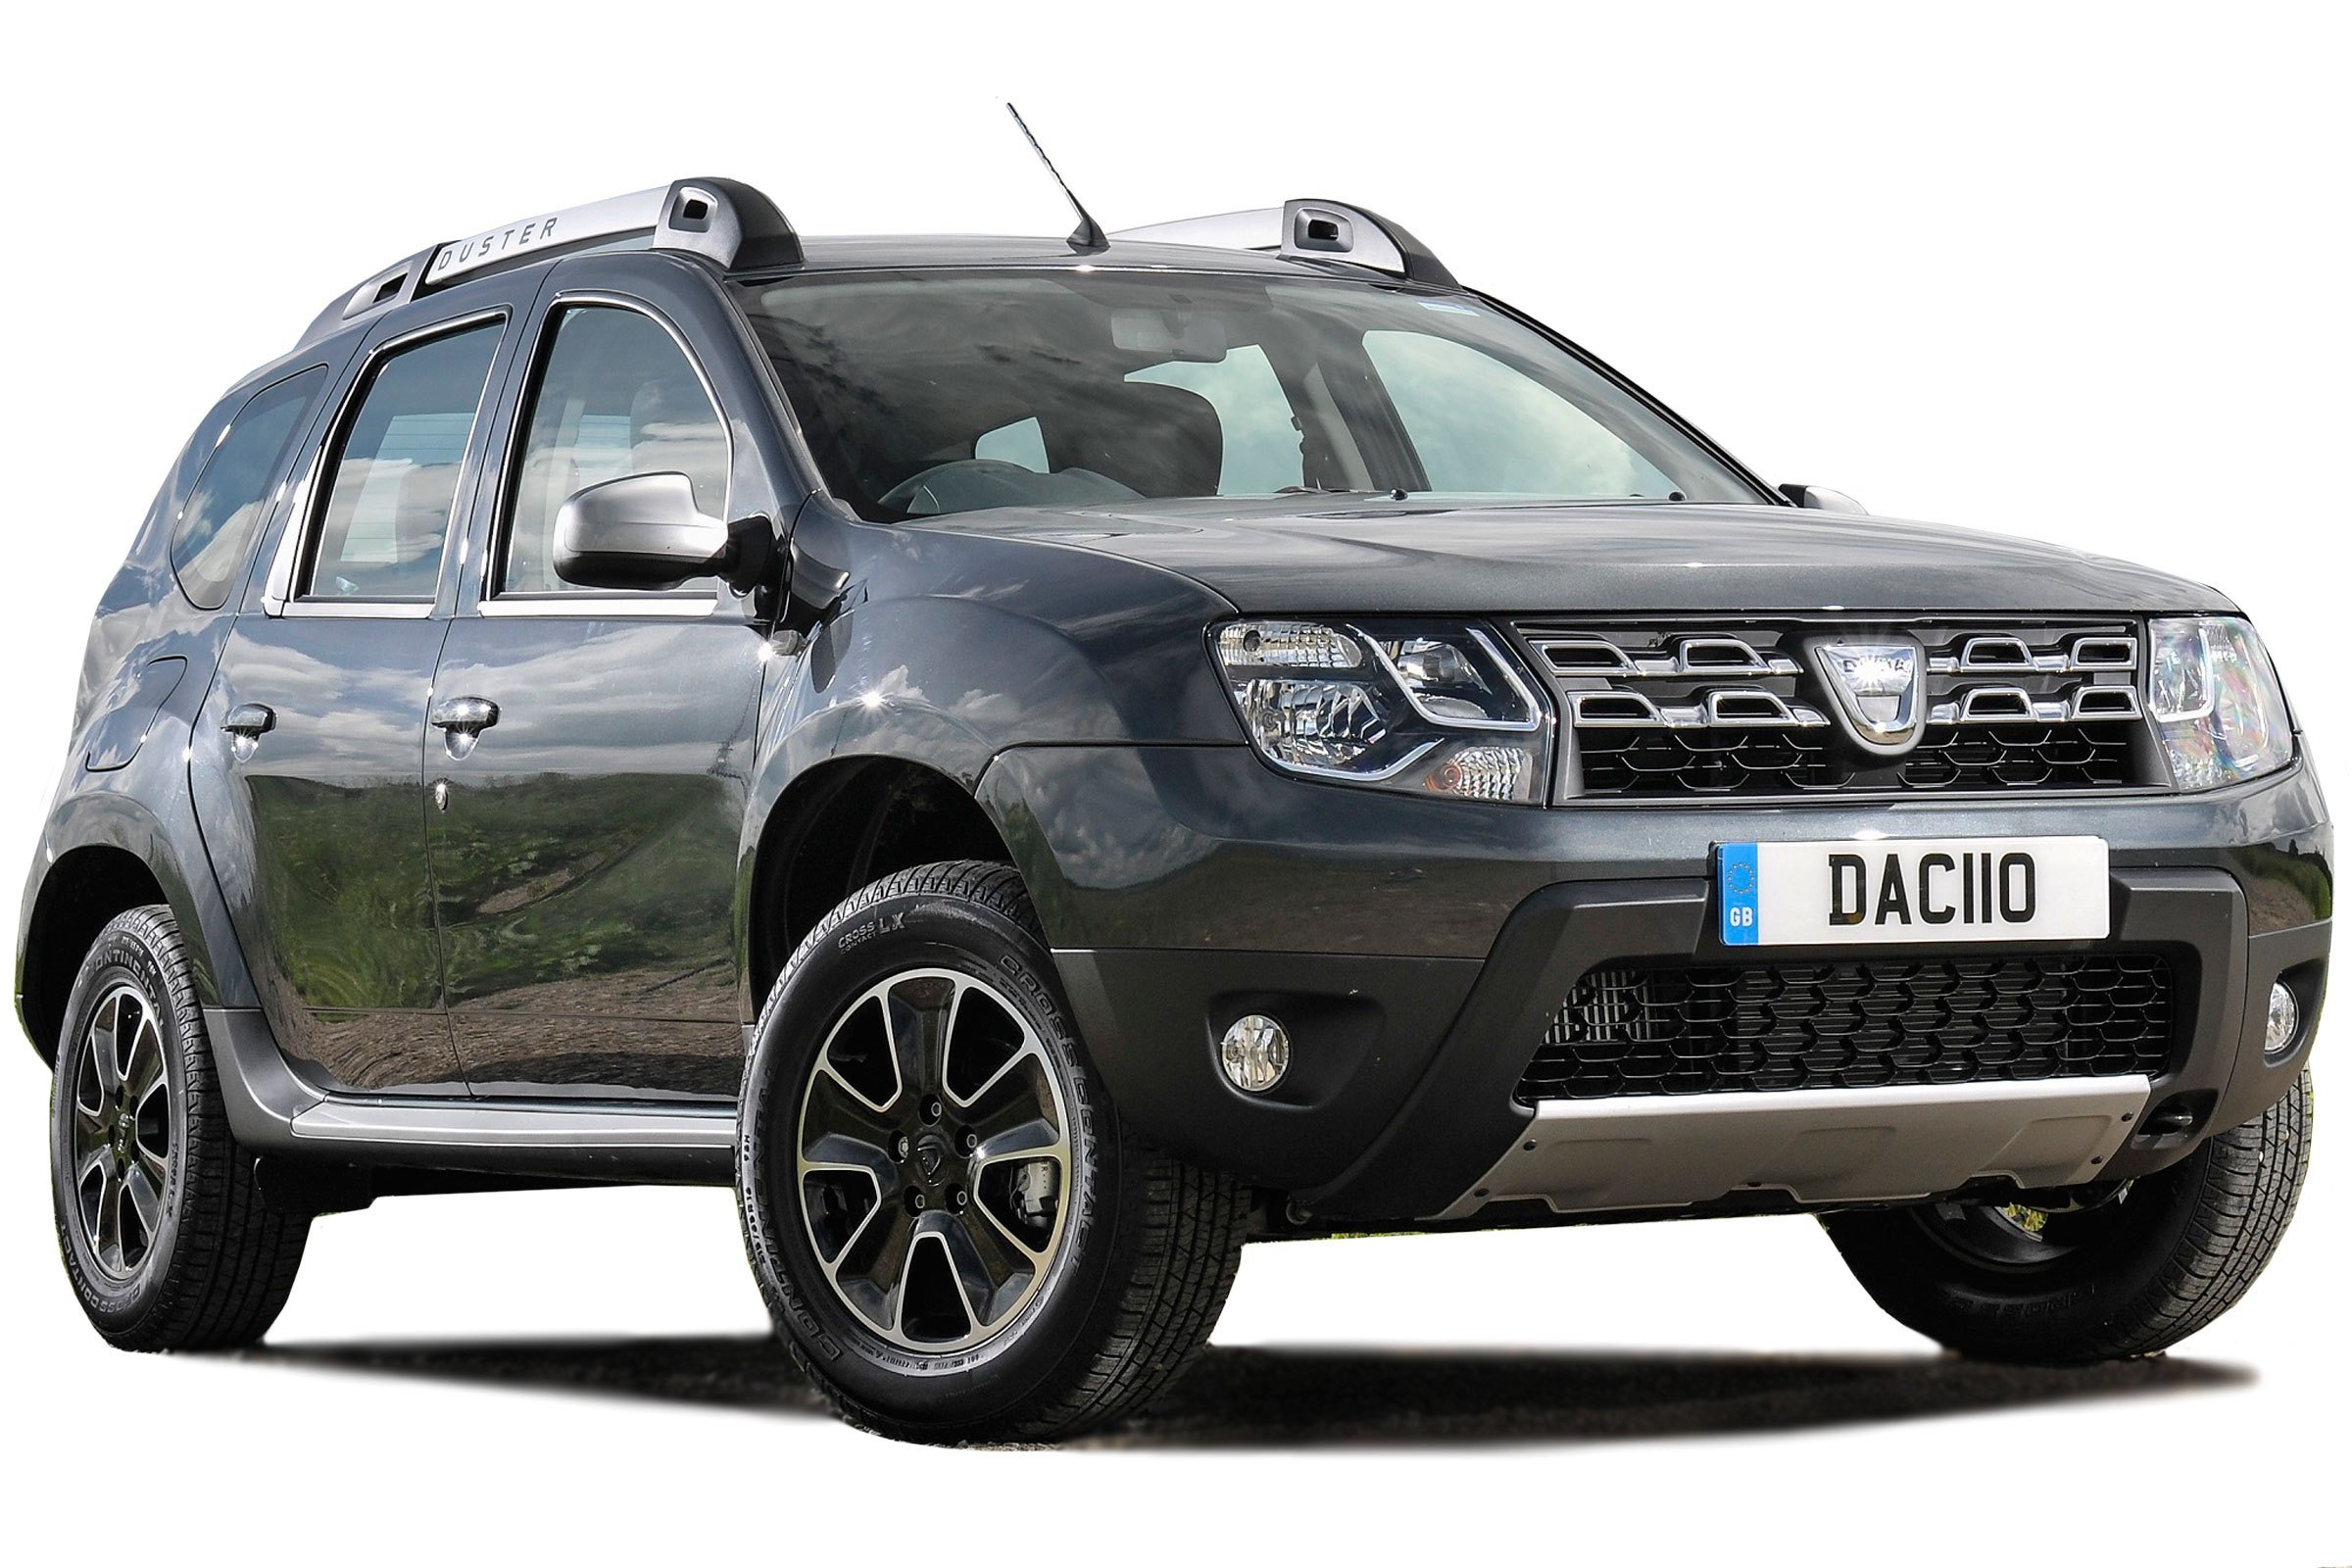 New Dacia Duster Suv 2012 2018 Review Carbuyer On This Month